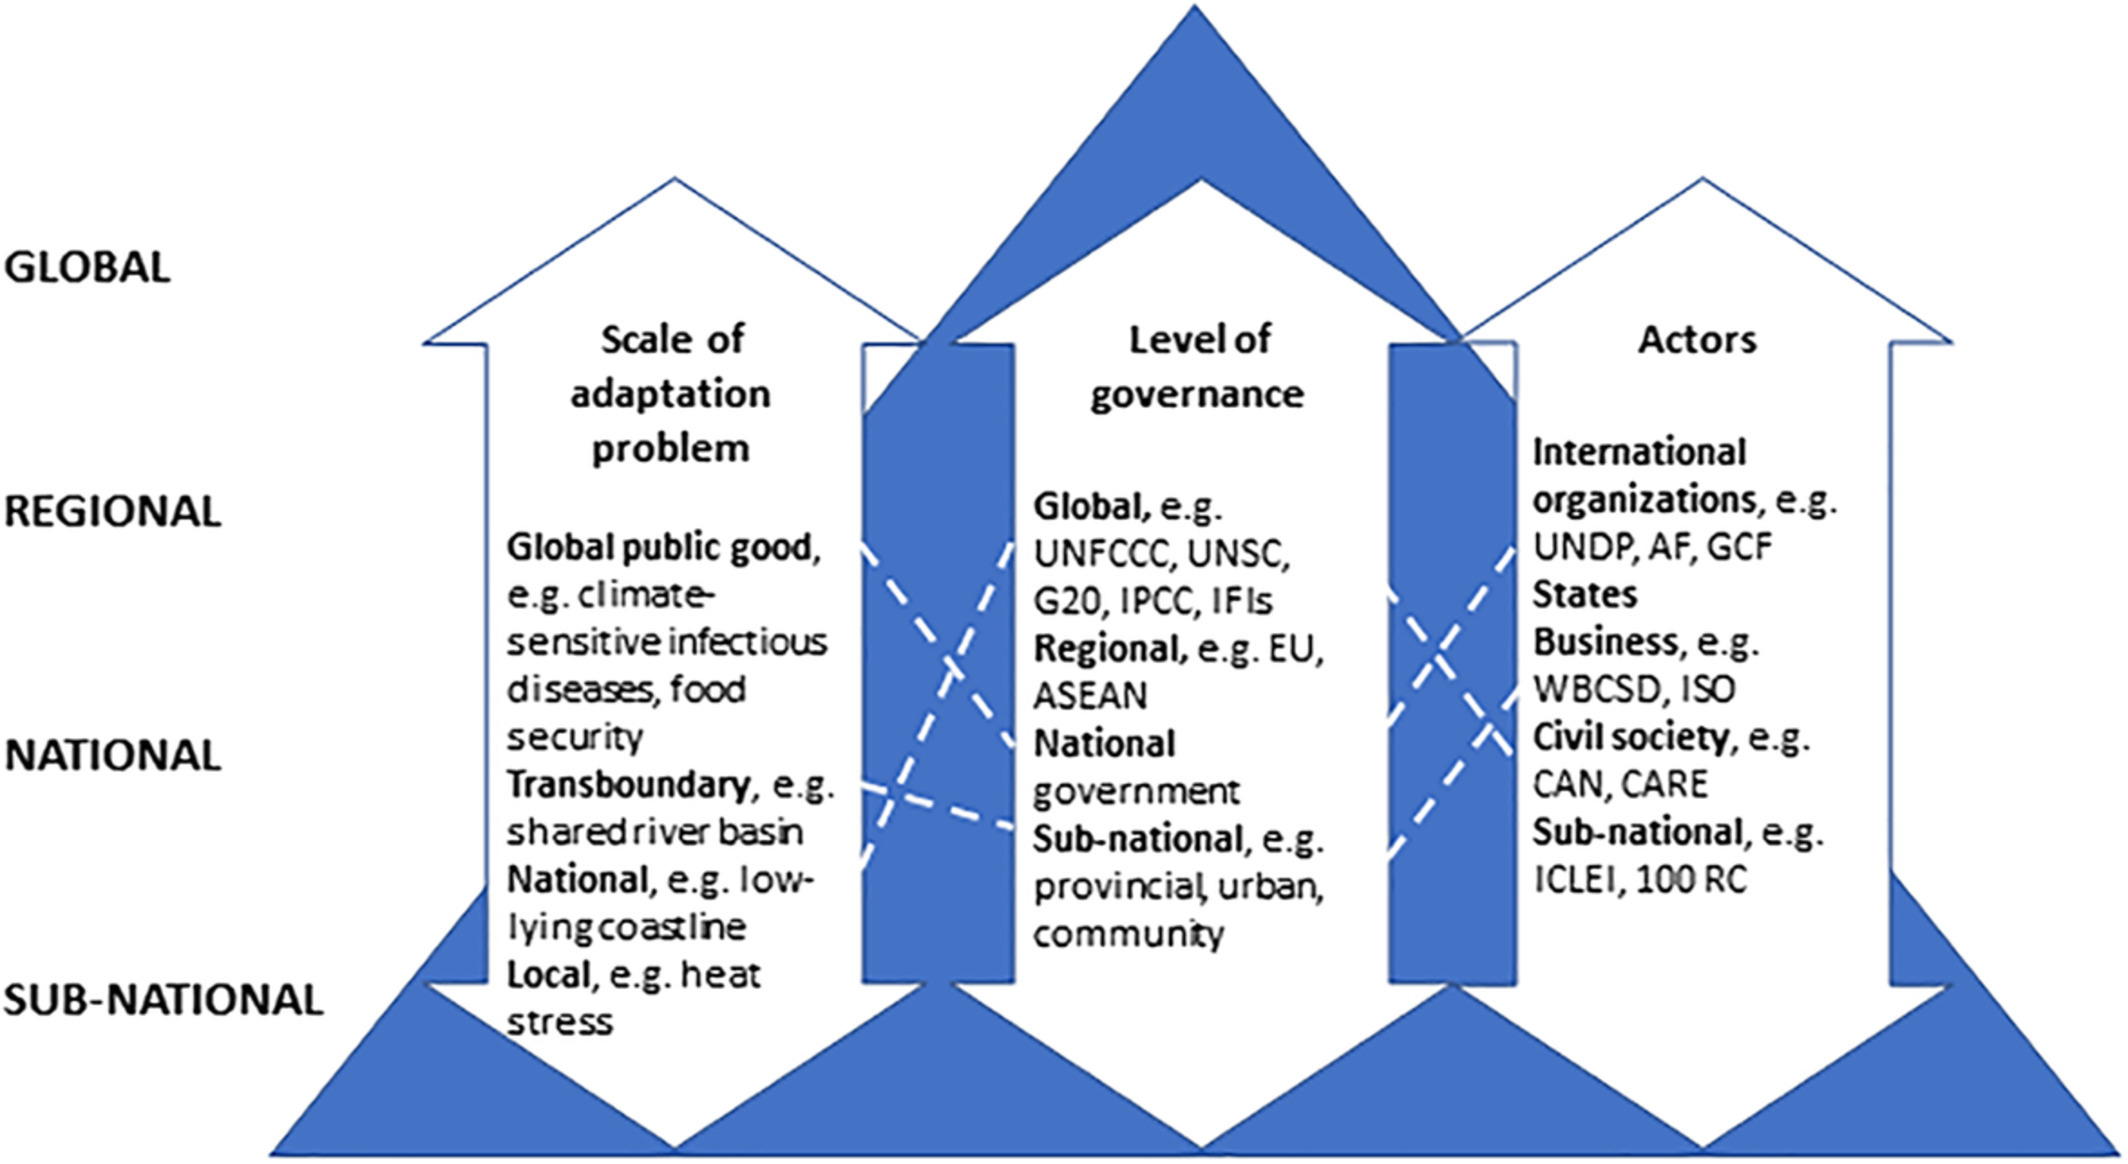 Climate adaptation takes place on different administrative levels